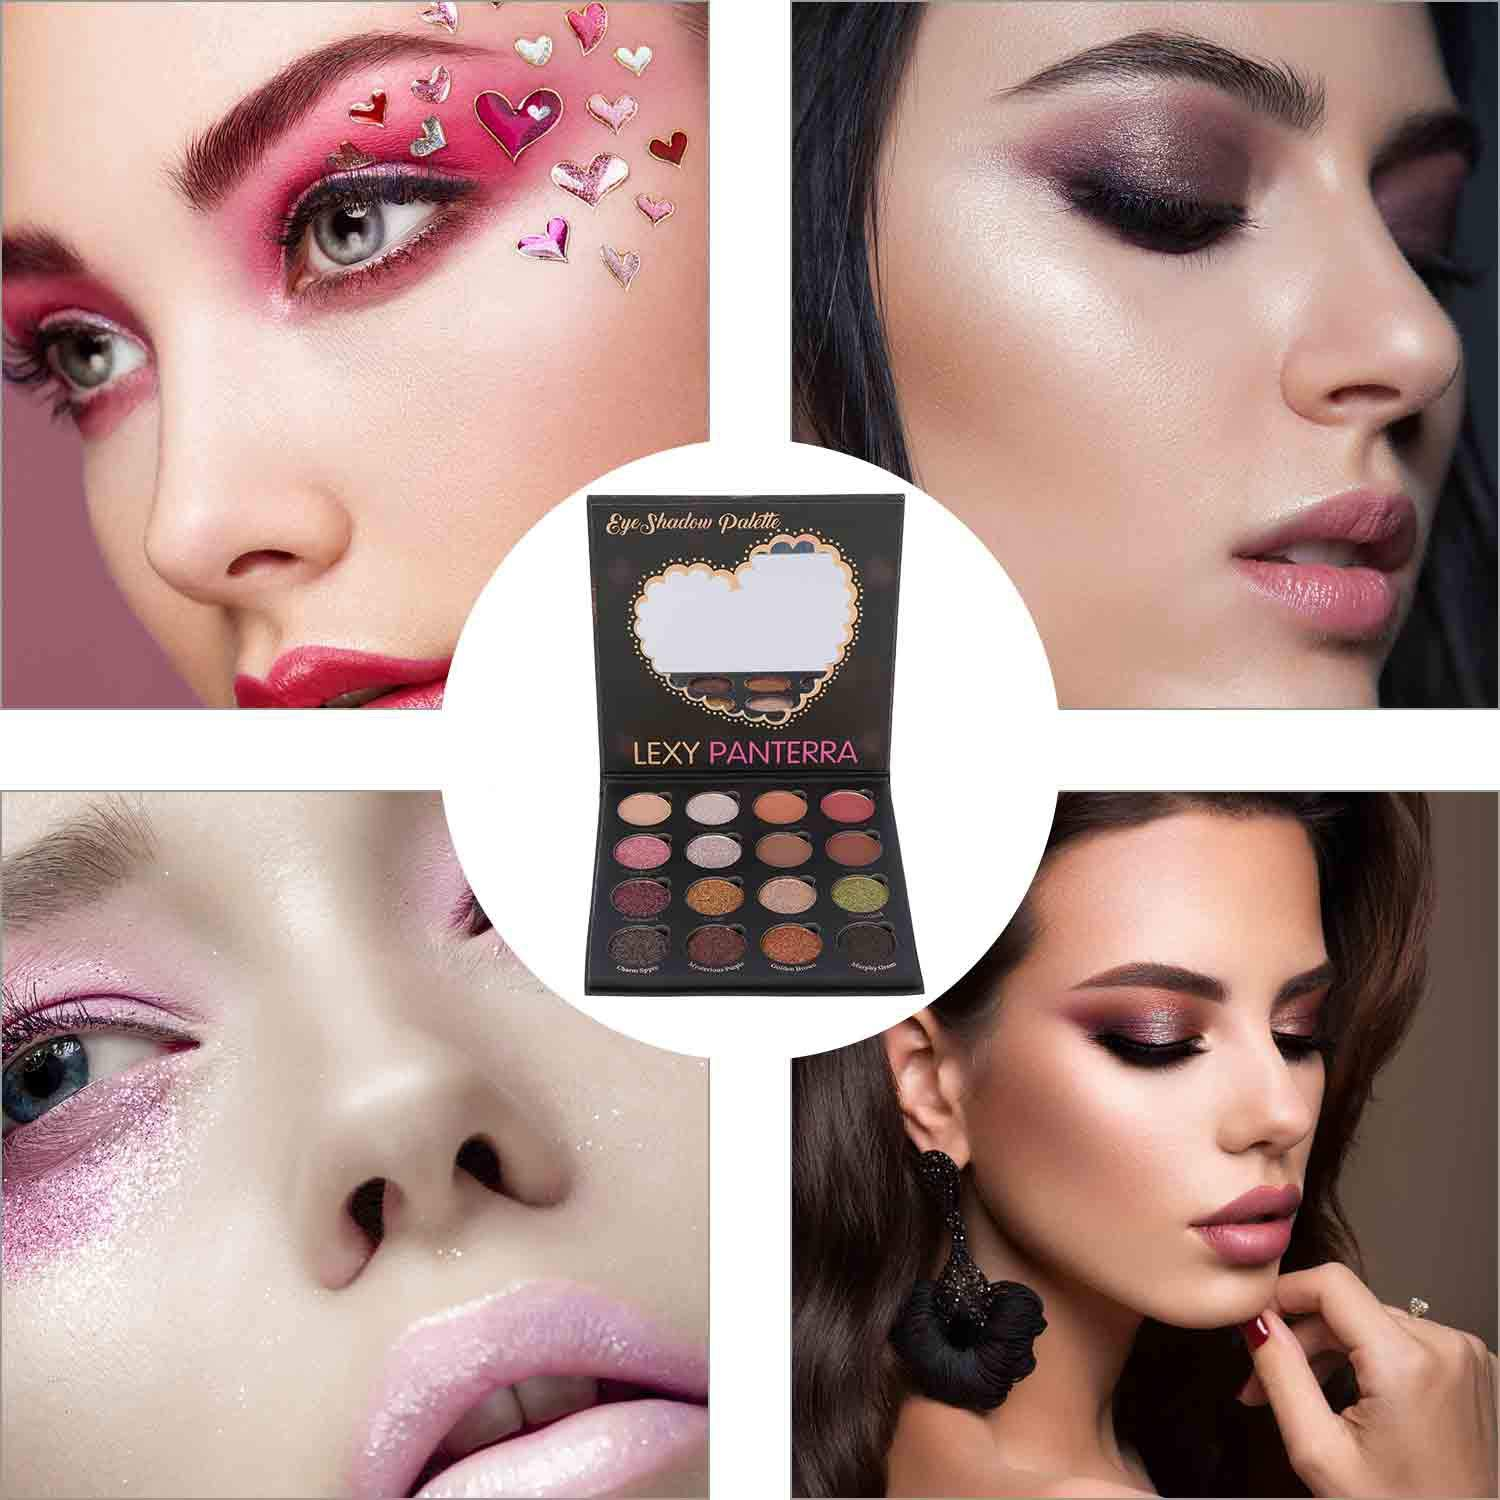 Kissfairy 16 Colors Glitter Eyeshadow Palette, Shiny and Pigmented Mineral Pressed Powder Eye Shadow Shimmer for Make up